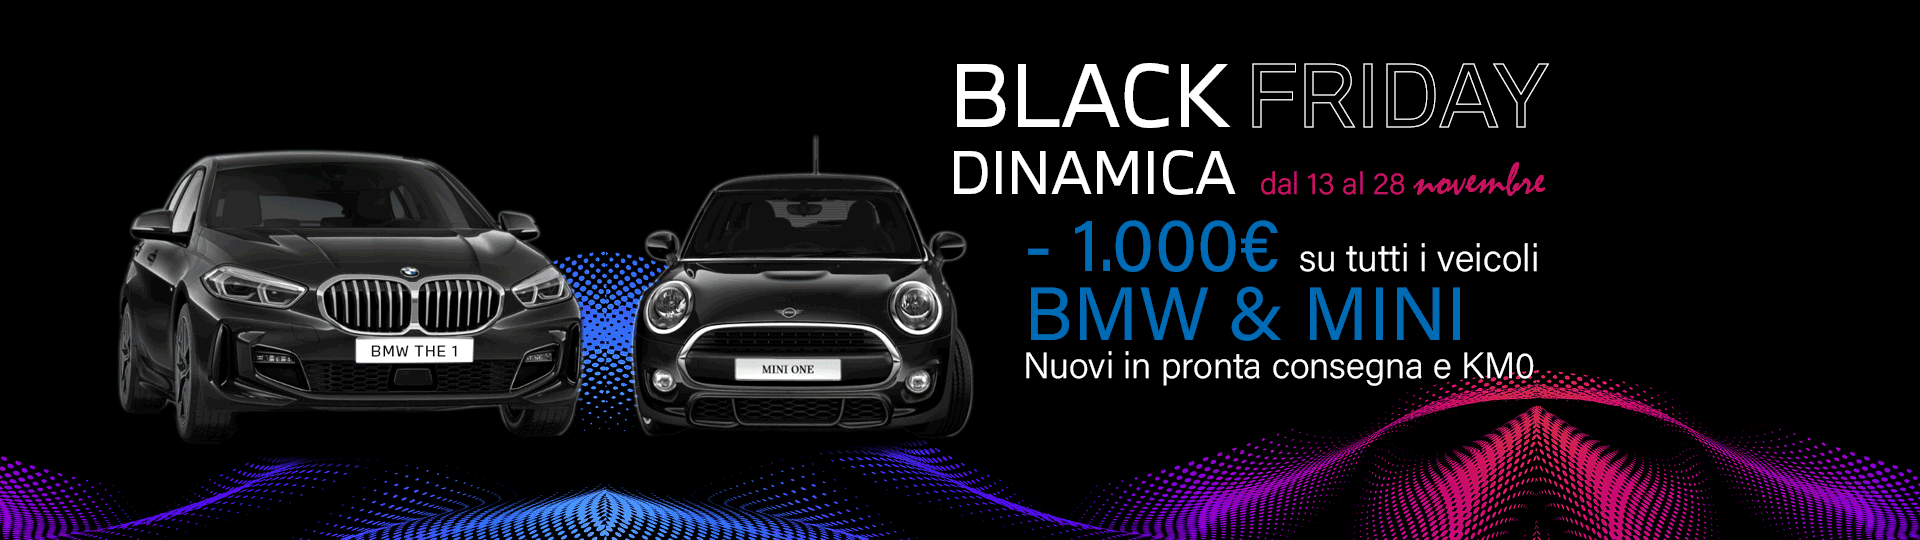 Black-Friday-Dinamica_novembre-2020-4-min.png